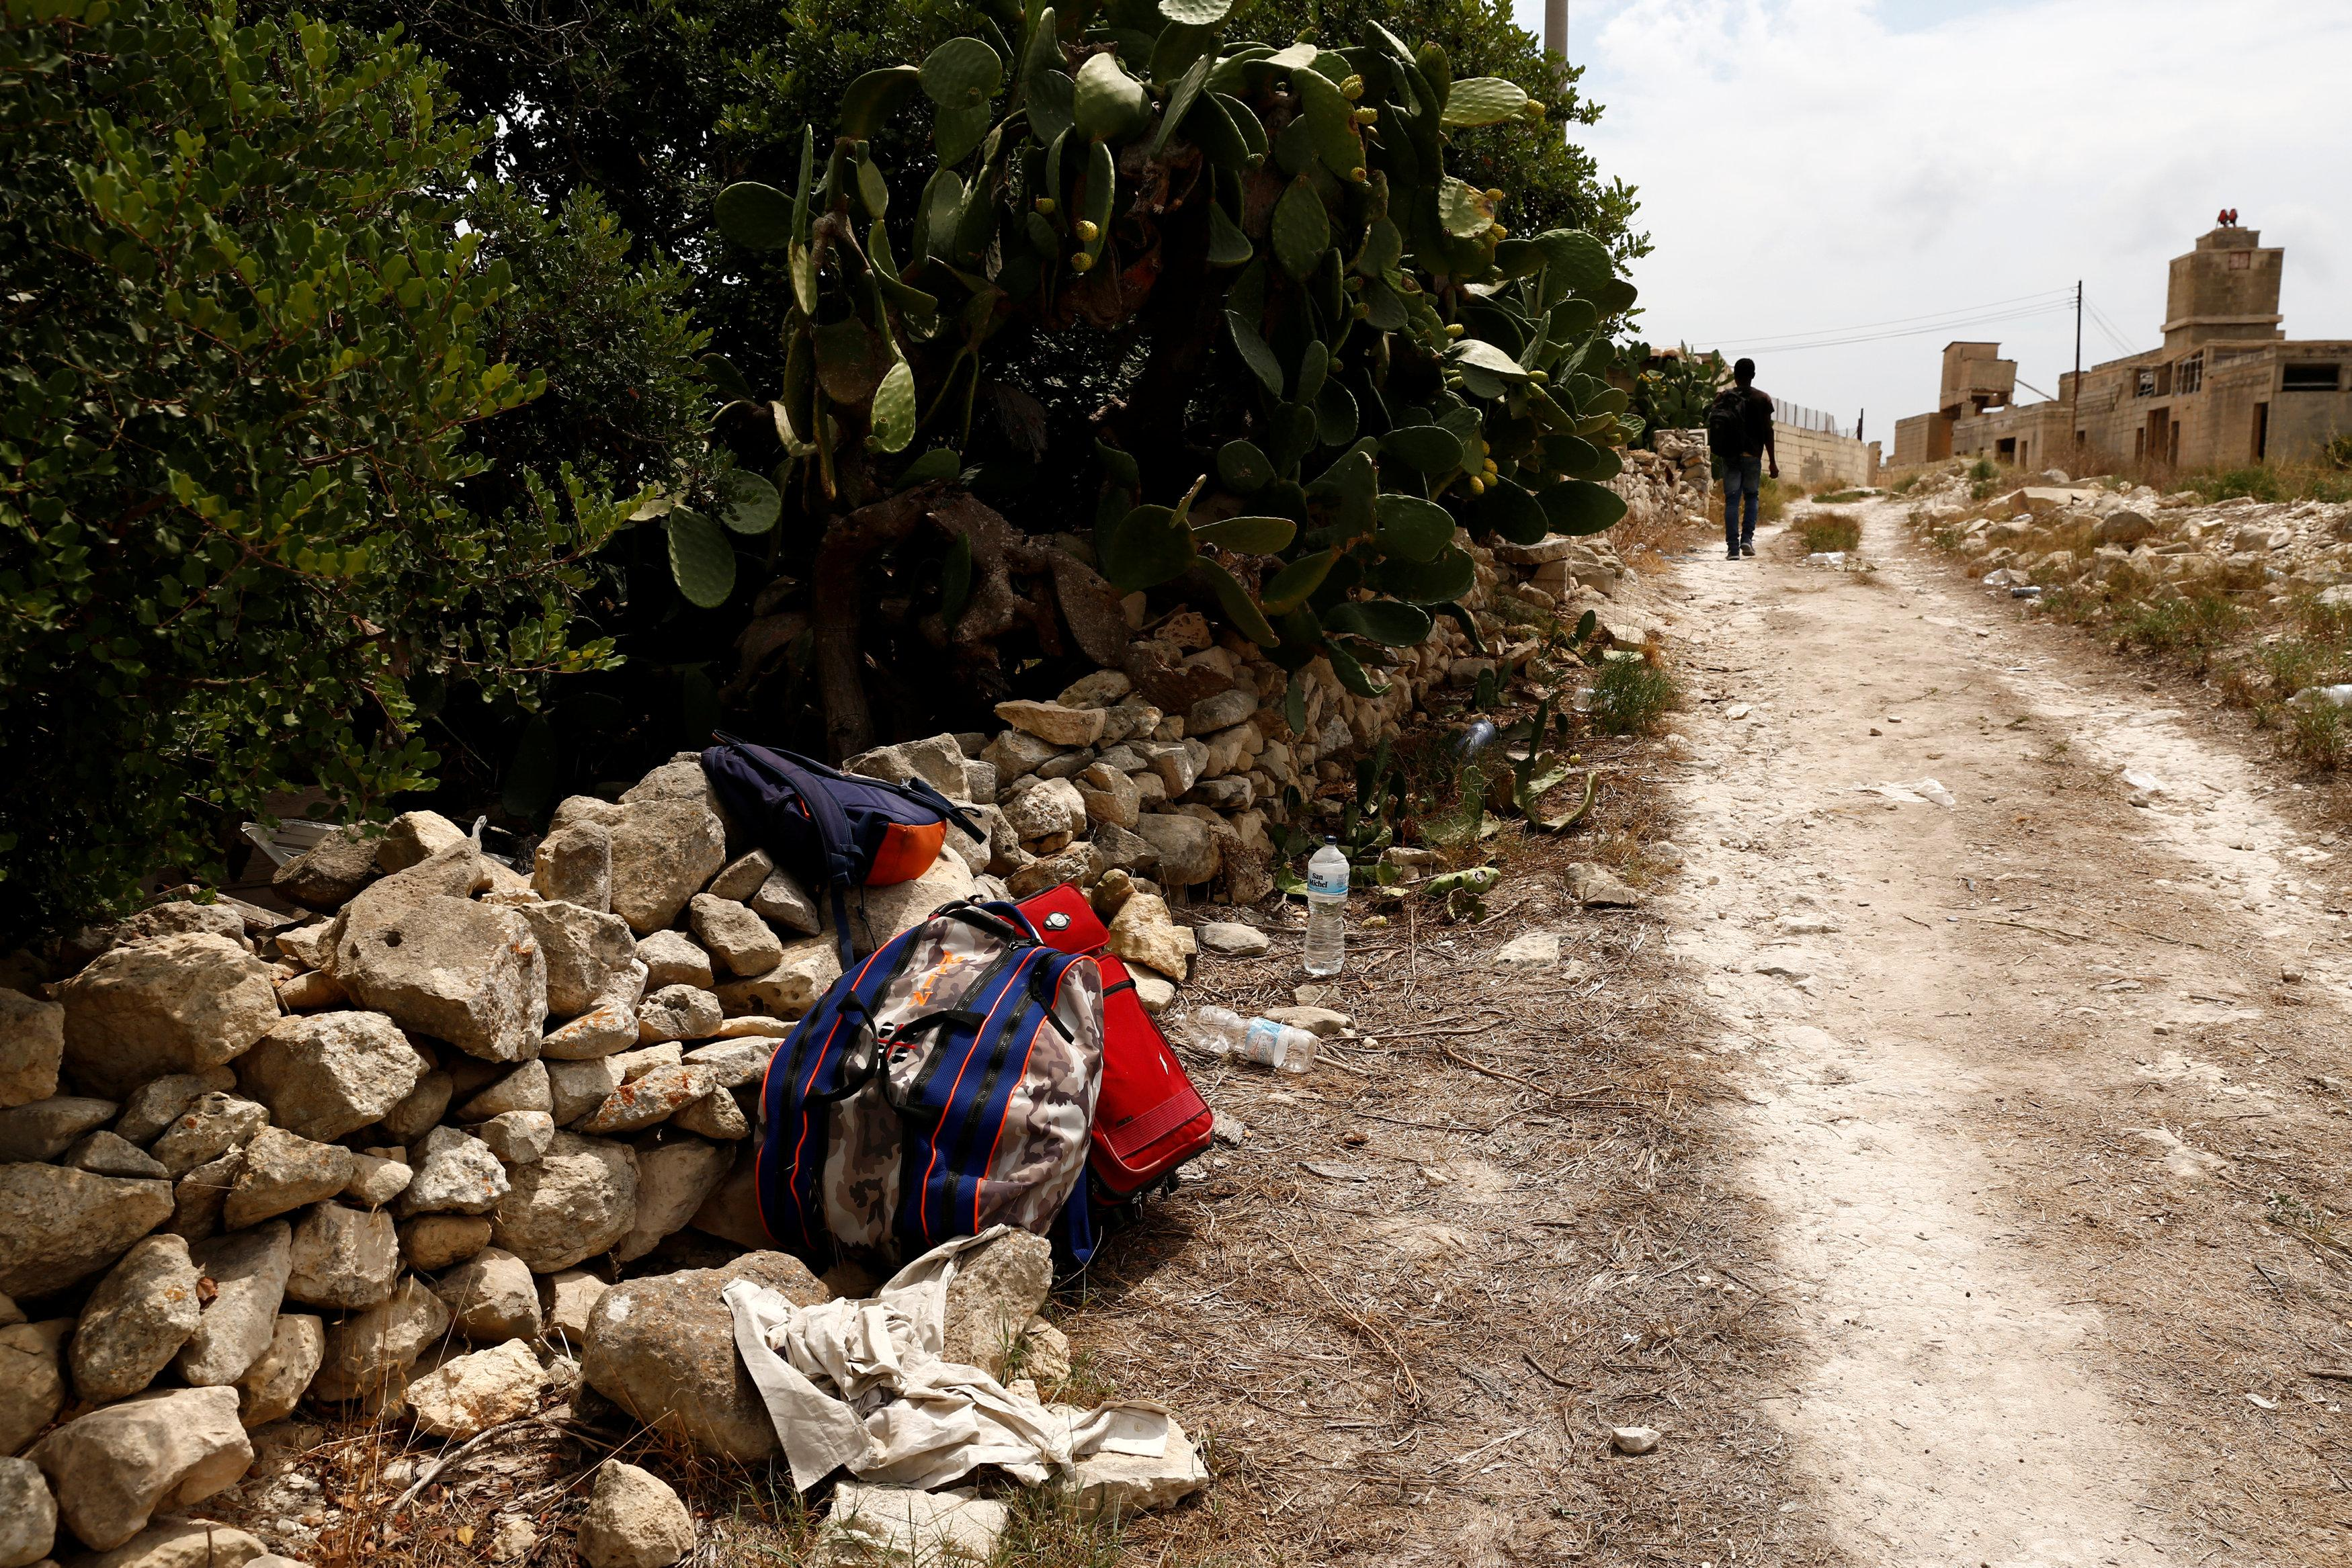 An evicted migrant walks past a farm where police evicted some 110 African migrants who had been living in stalls formerly used by cows, in Qormi, Malta August 13, 2018.  Darrin Zammit Lupi